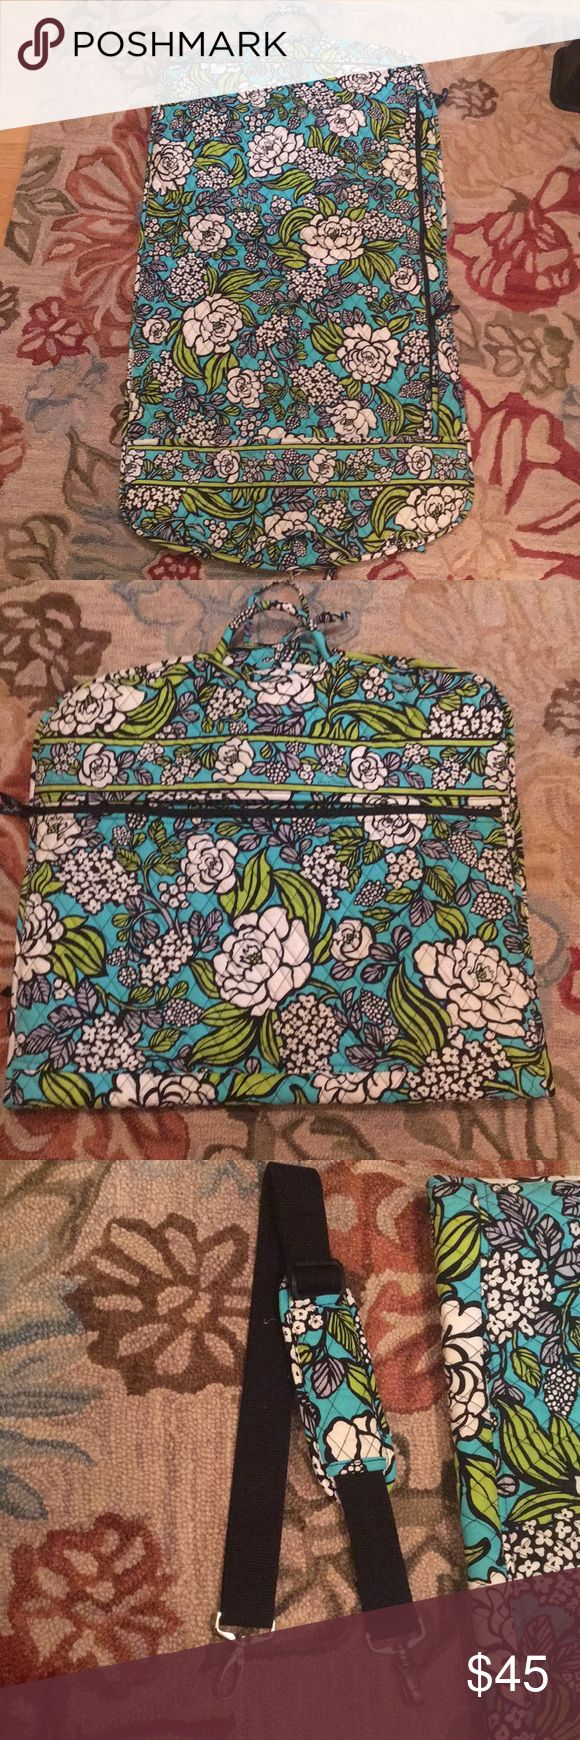 NWOT Vera Bradley Garment Bag Hanging garment bag by Vera Bradley.  Gorgeous aqua and white flower pattern.  Signature quilted style.  Never been used.  42 inches when unfolded, 22 inches across. Vera Bradley Bags Travel Bags